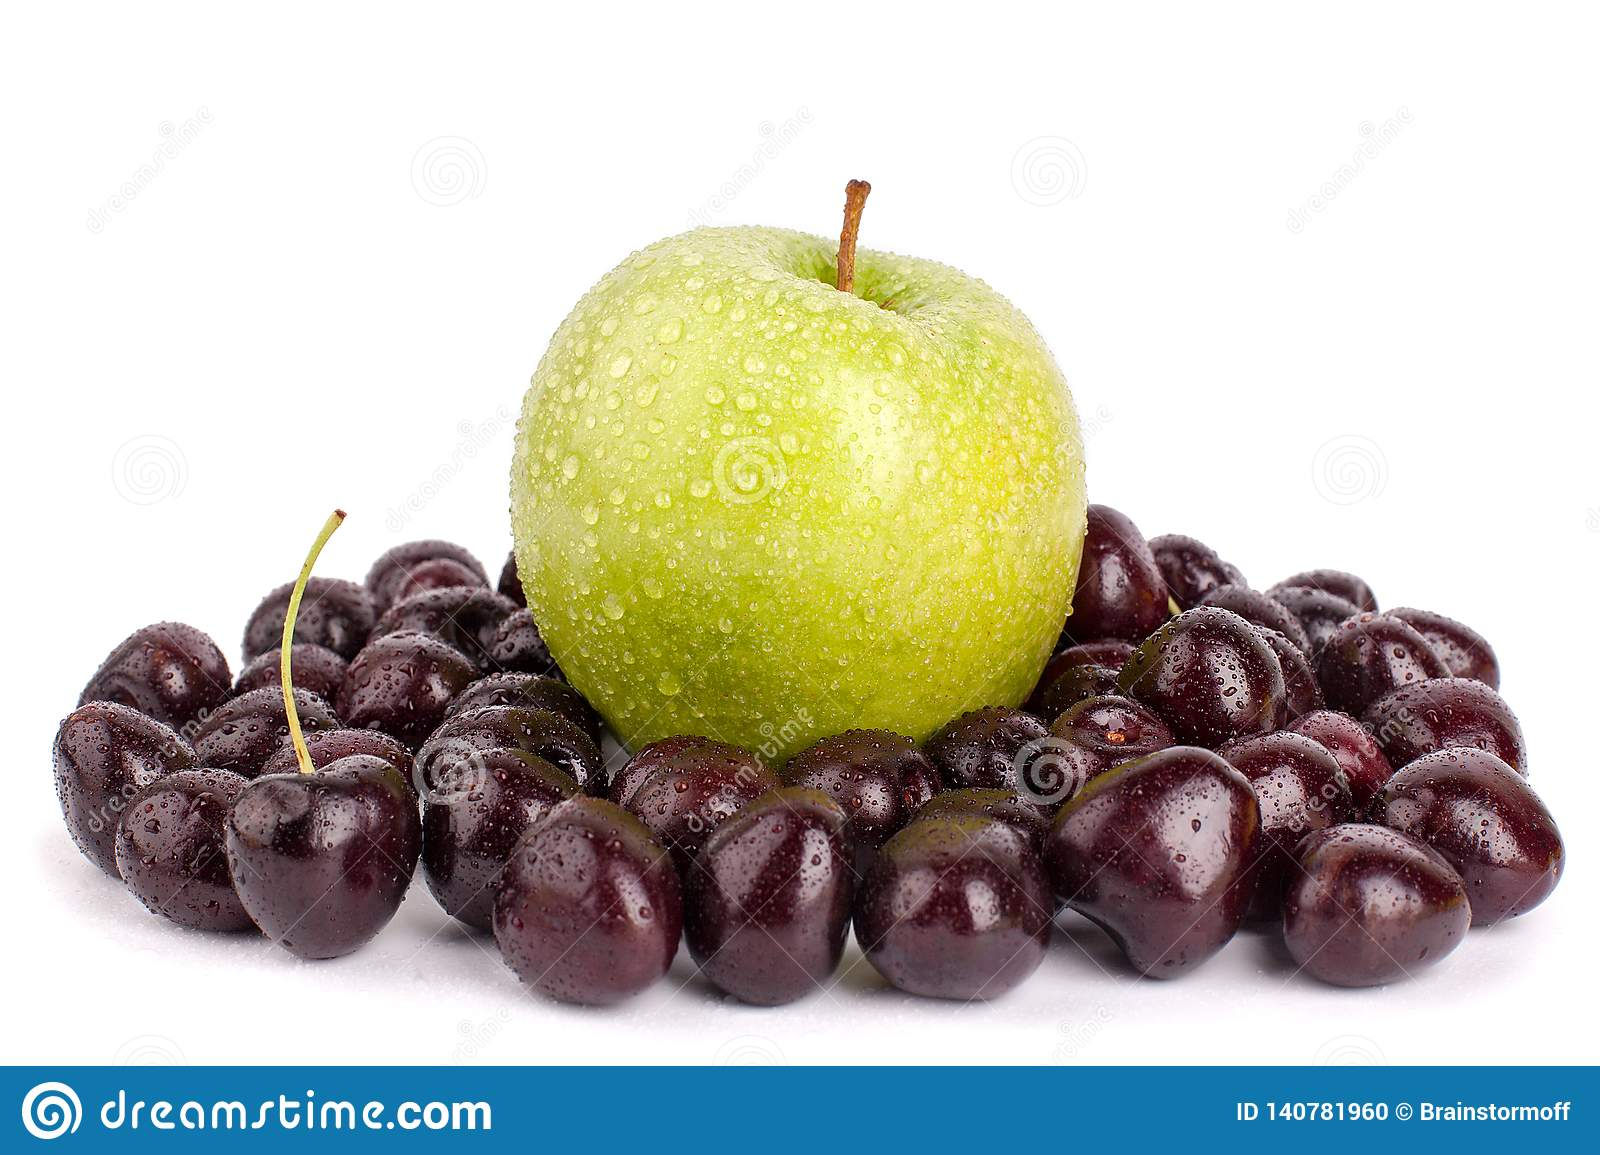 Cherry berries and one big green apple on white background isolated close up macro